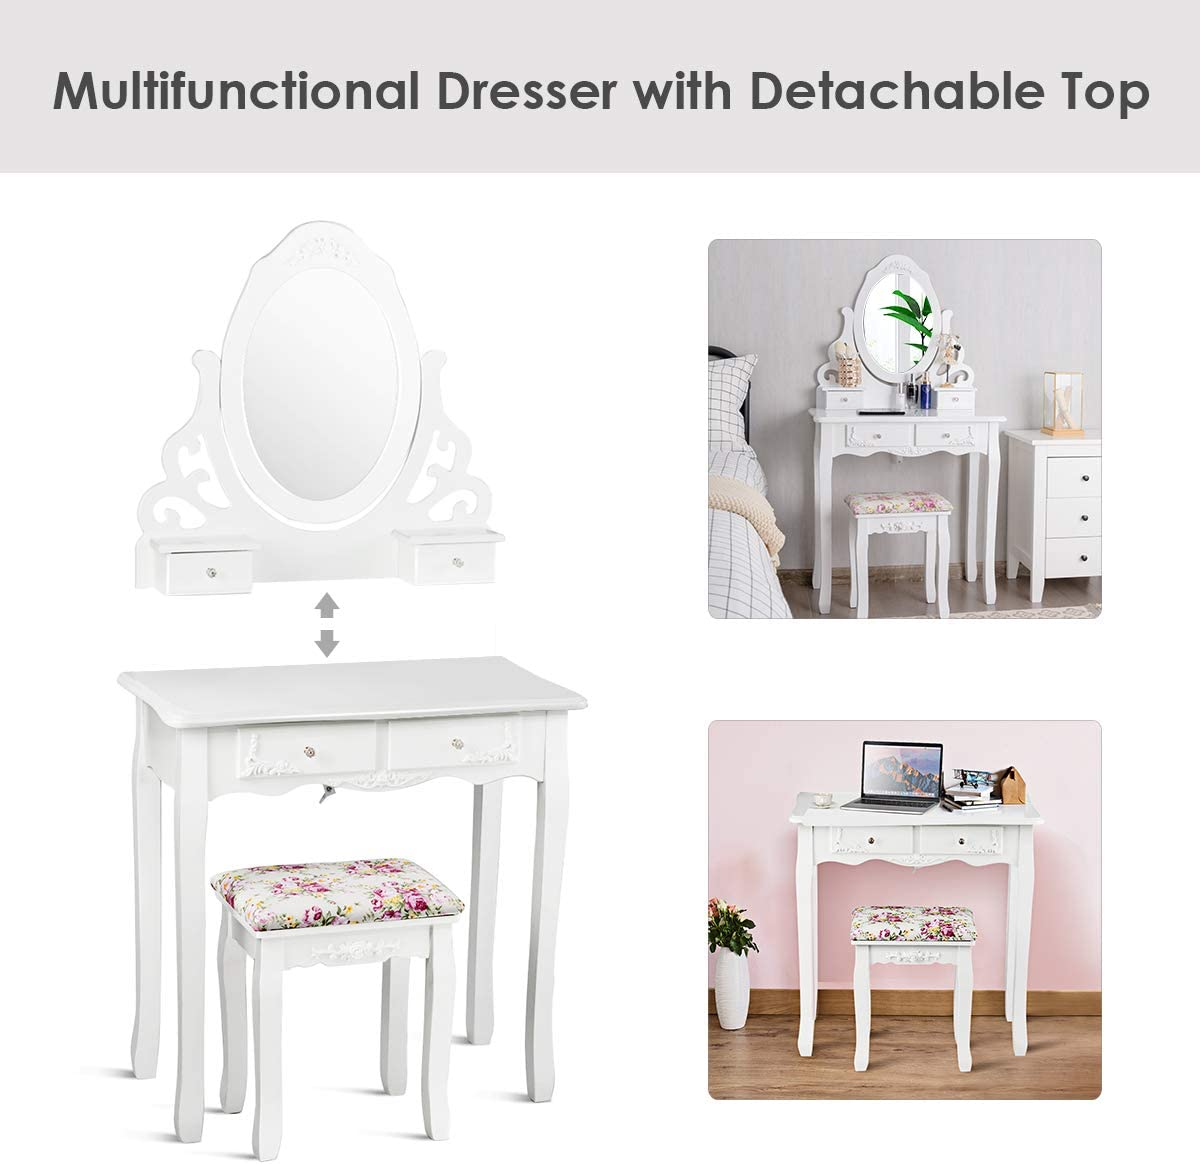 Giantex Vanity Dressing Table with Mirror and Stool, 360 Rotating Oval Makeup Mirror Classic Style Delicate Carved Cushioned Benches Wood Legs, Vanity Tables with Divided Drawers White